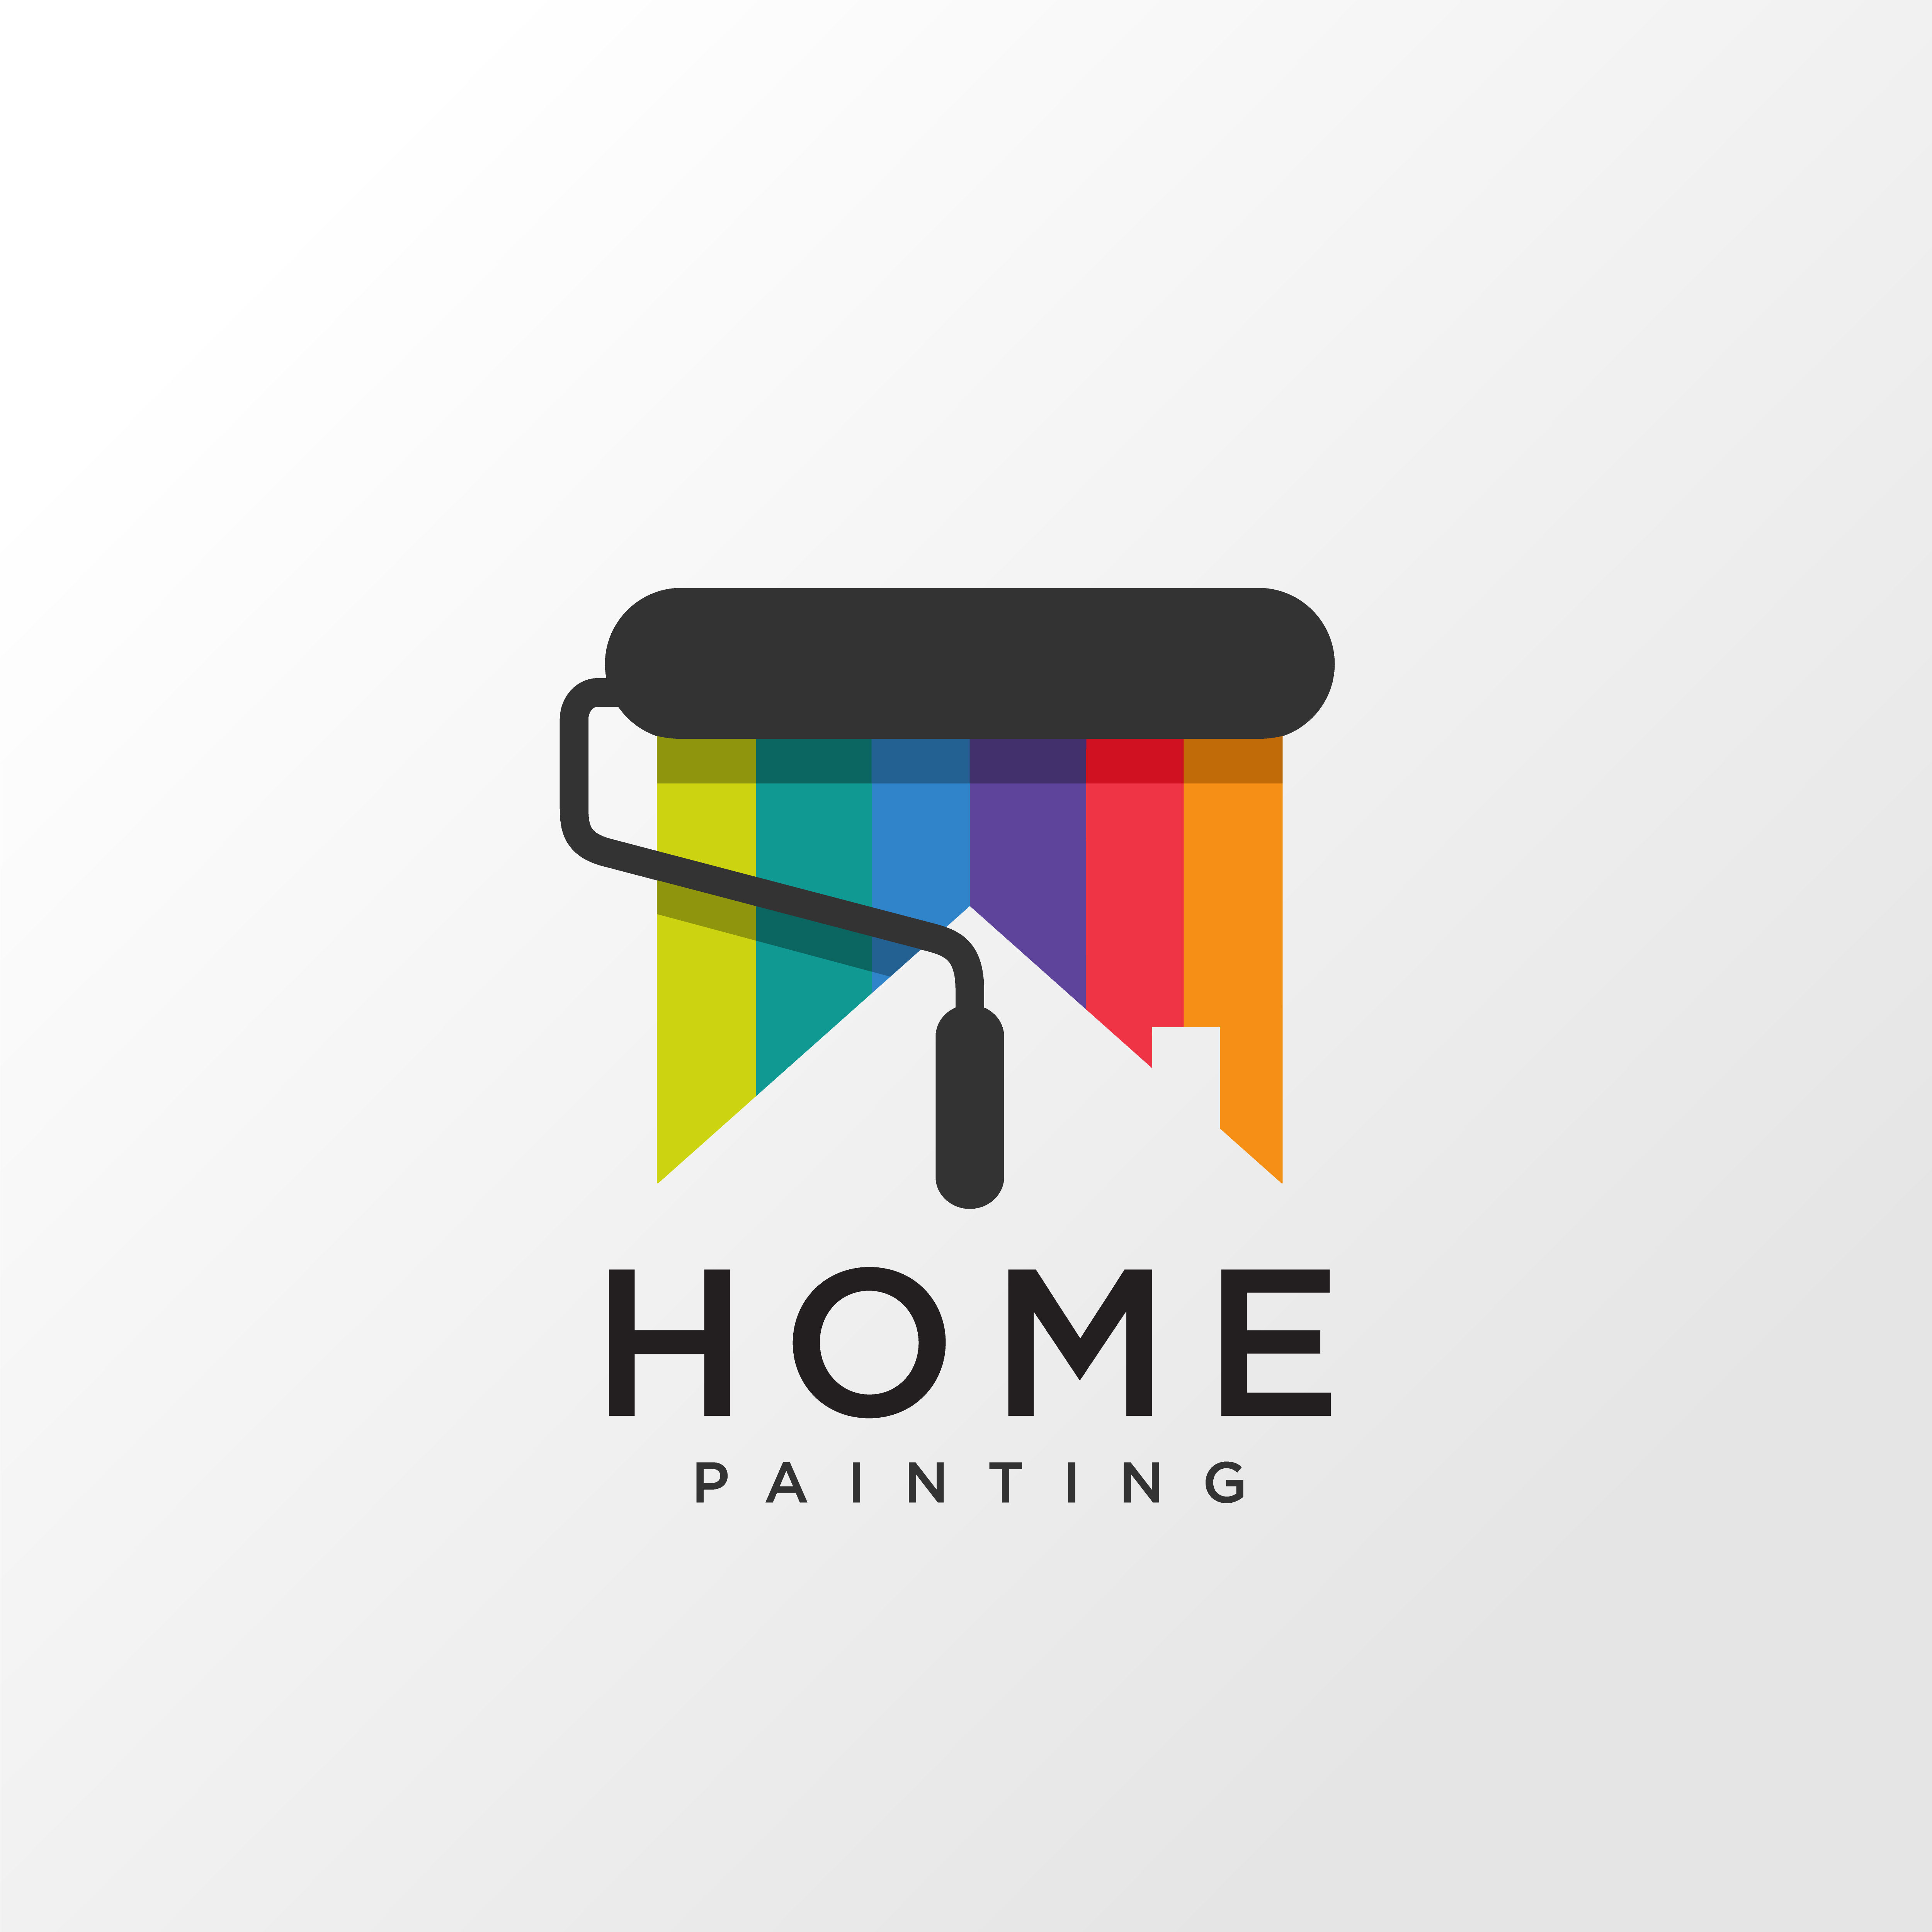 Home painting logo design concept with rainbow color